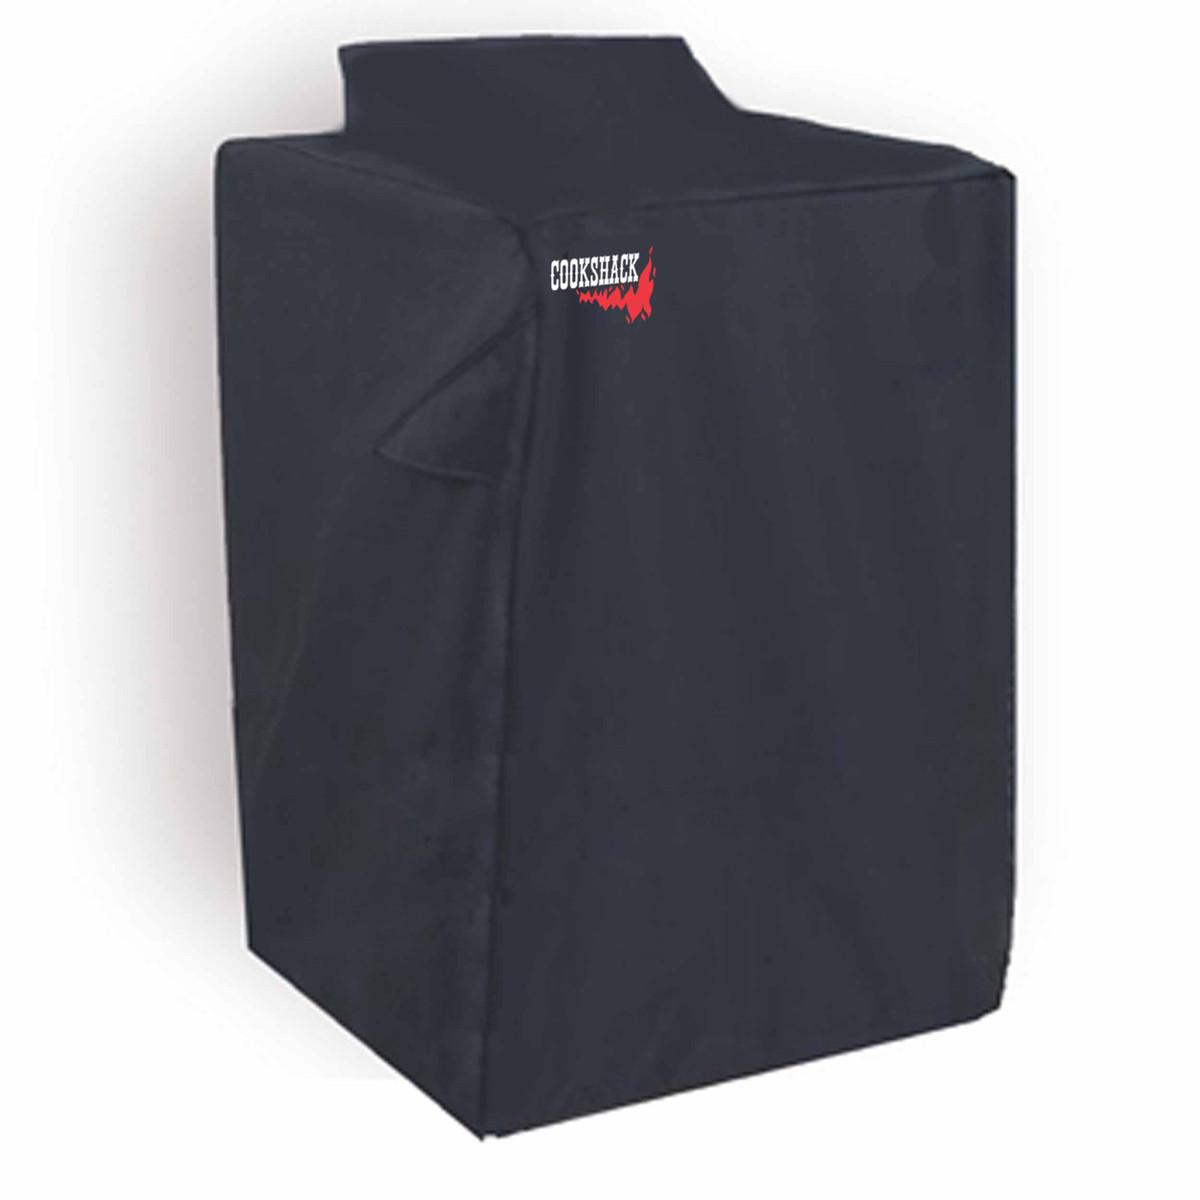 Cookshack Smoker Cover For Smokette Elite Series Smokers On Stand - Pv033